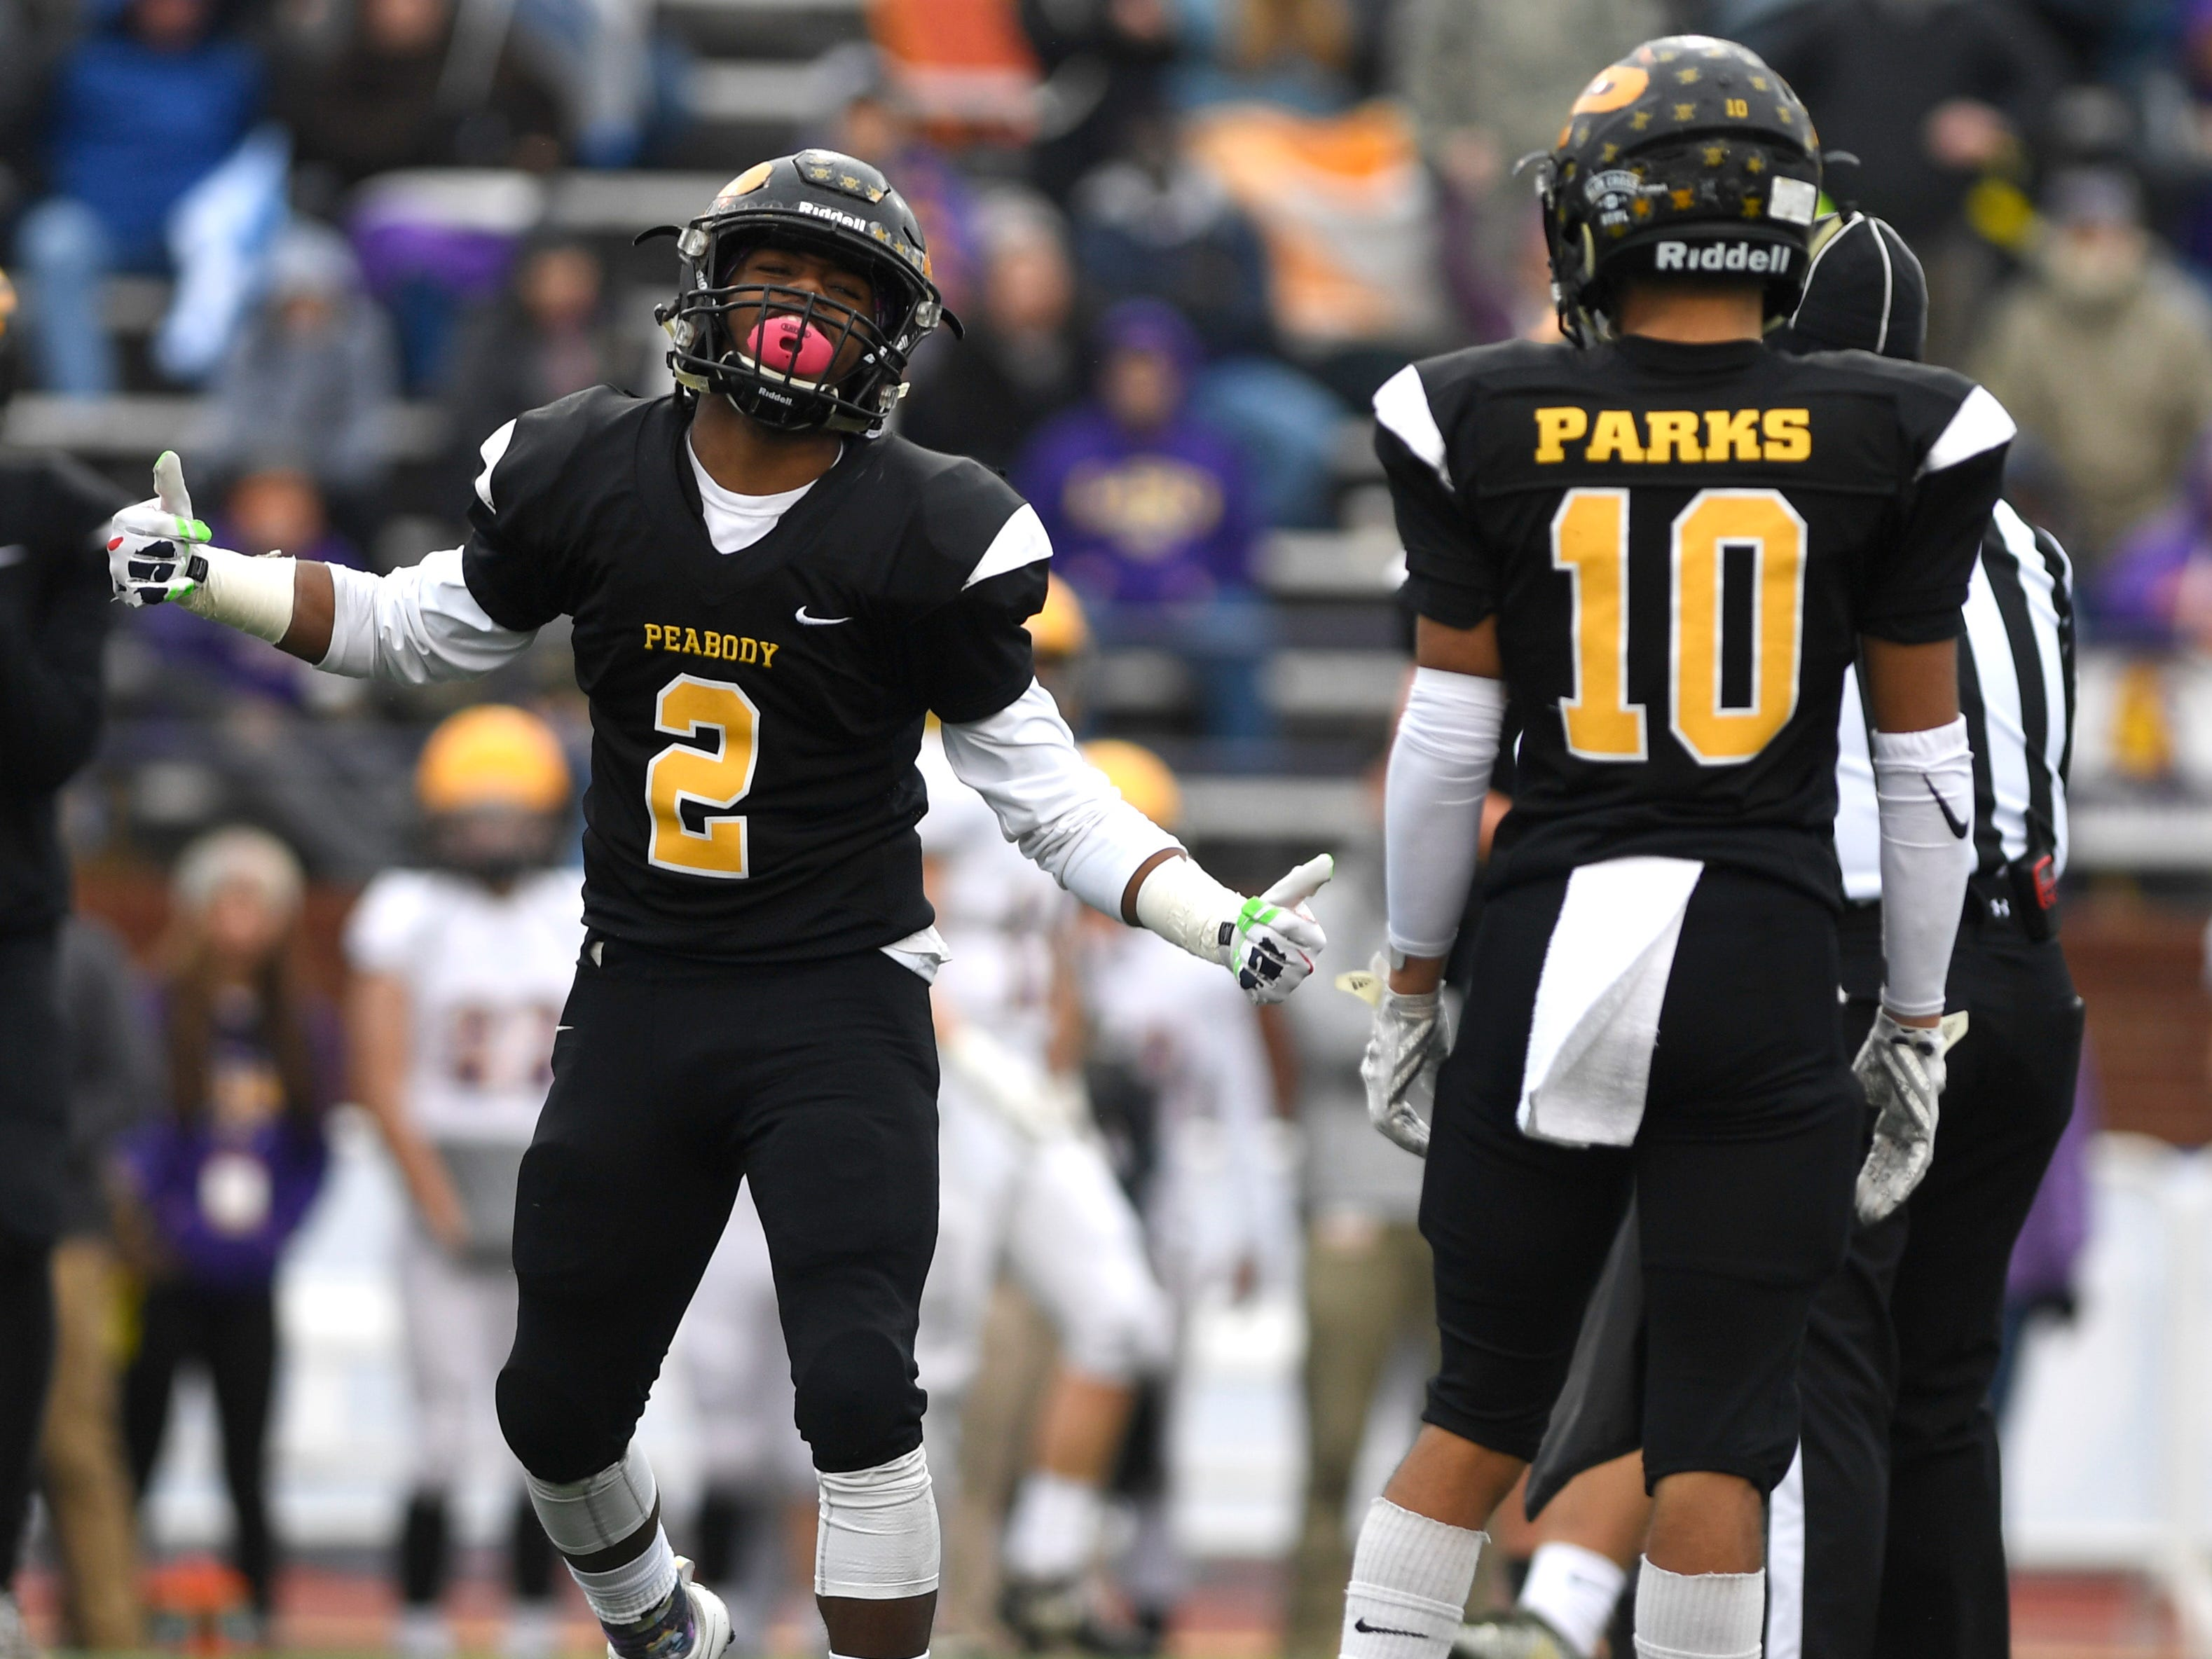 Peabody's Courtlen Wade (2) reacts to missing an interception in the second quarter during the Class 2A BlueCross Bowl state championship at Tennessee Tech's Tucker Stadium in Cookeville, Tenn., on Thursday, Nov. 29, 2018.